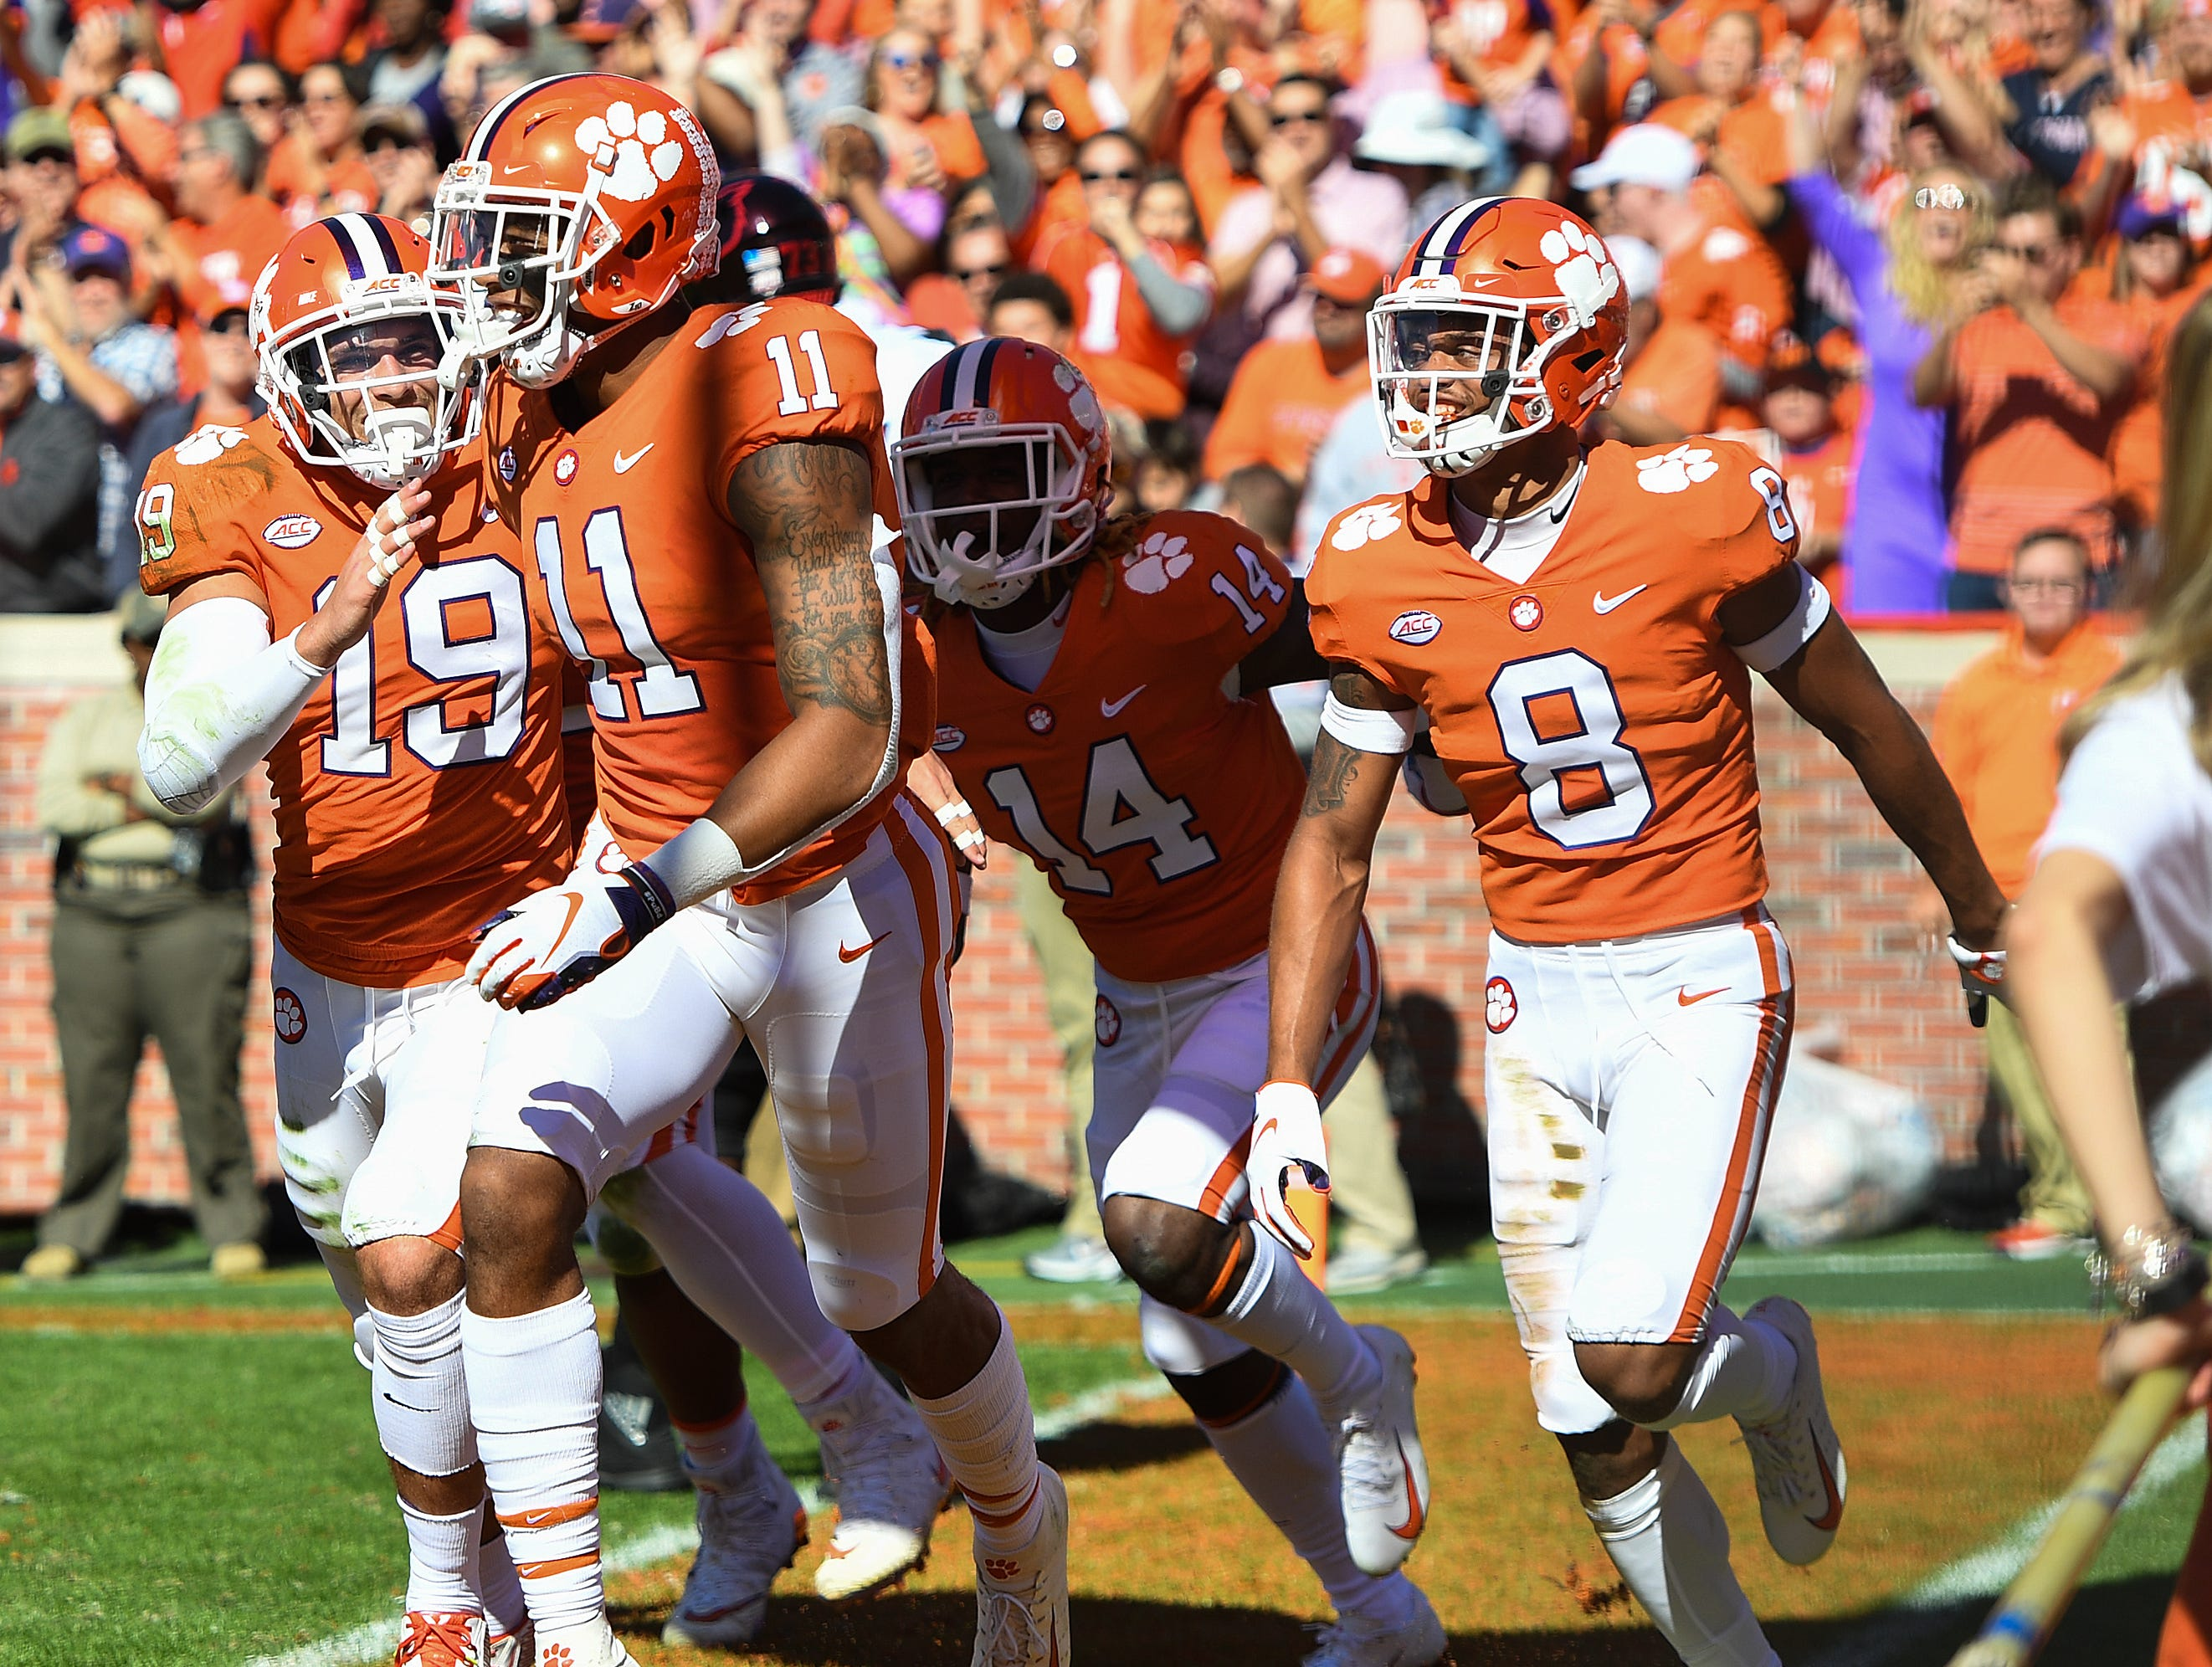 Clemson safety Isaiah Simmons (11) celebrates after scoring after intercepting a Louisville pass during the 2nd quarter Saturday, November 3, 2018 at Clemson's Memorial Stadium.